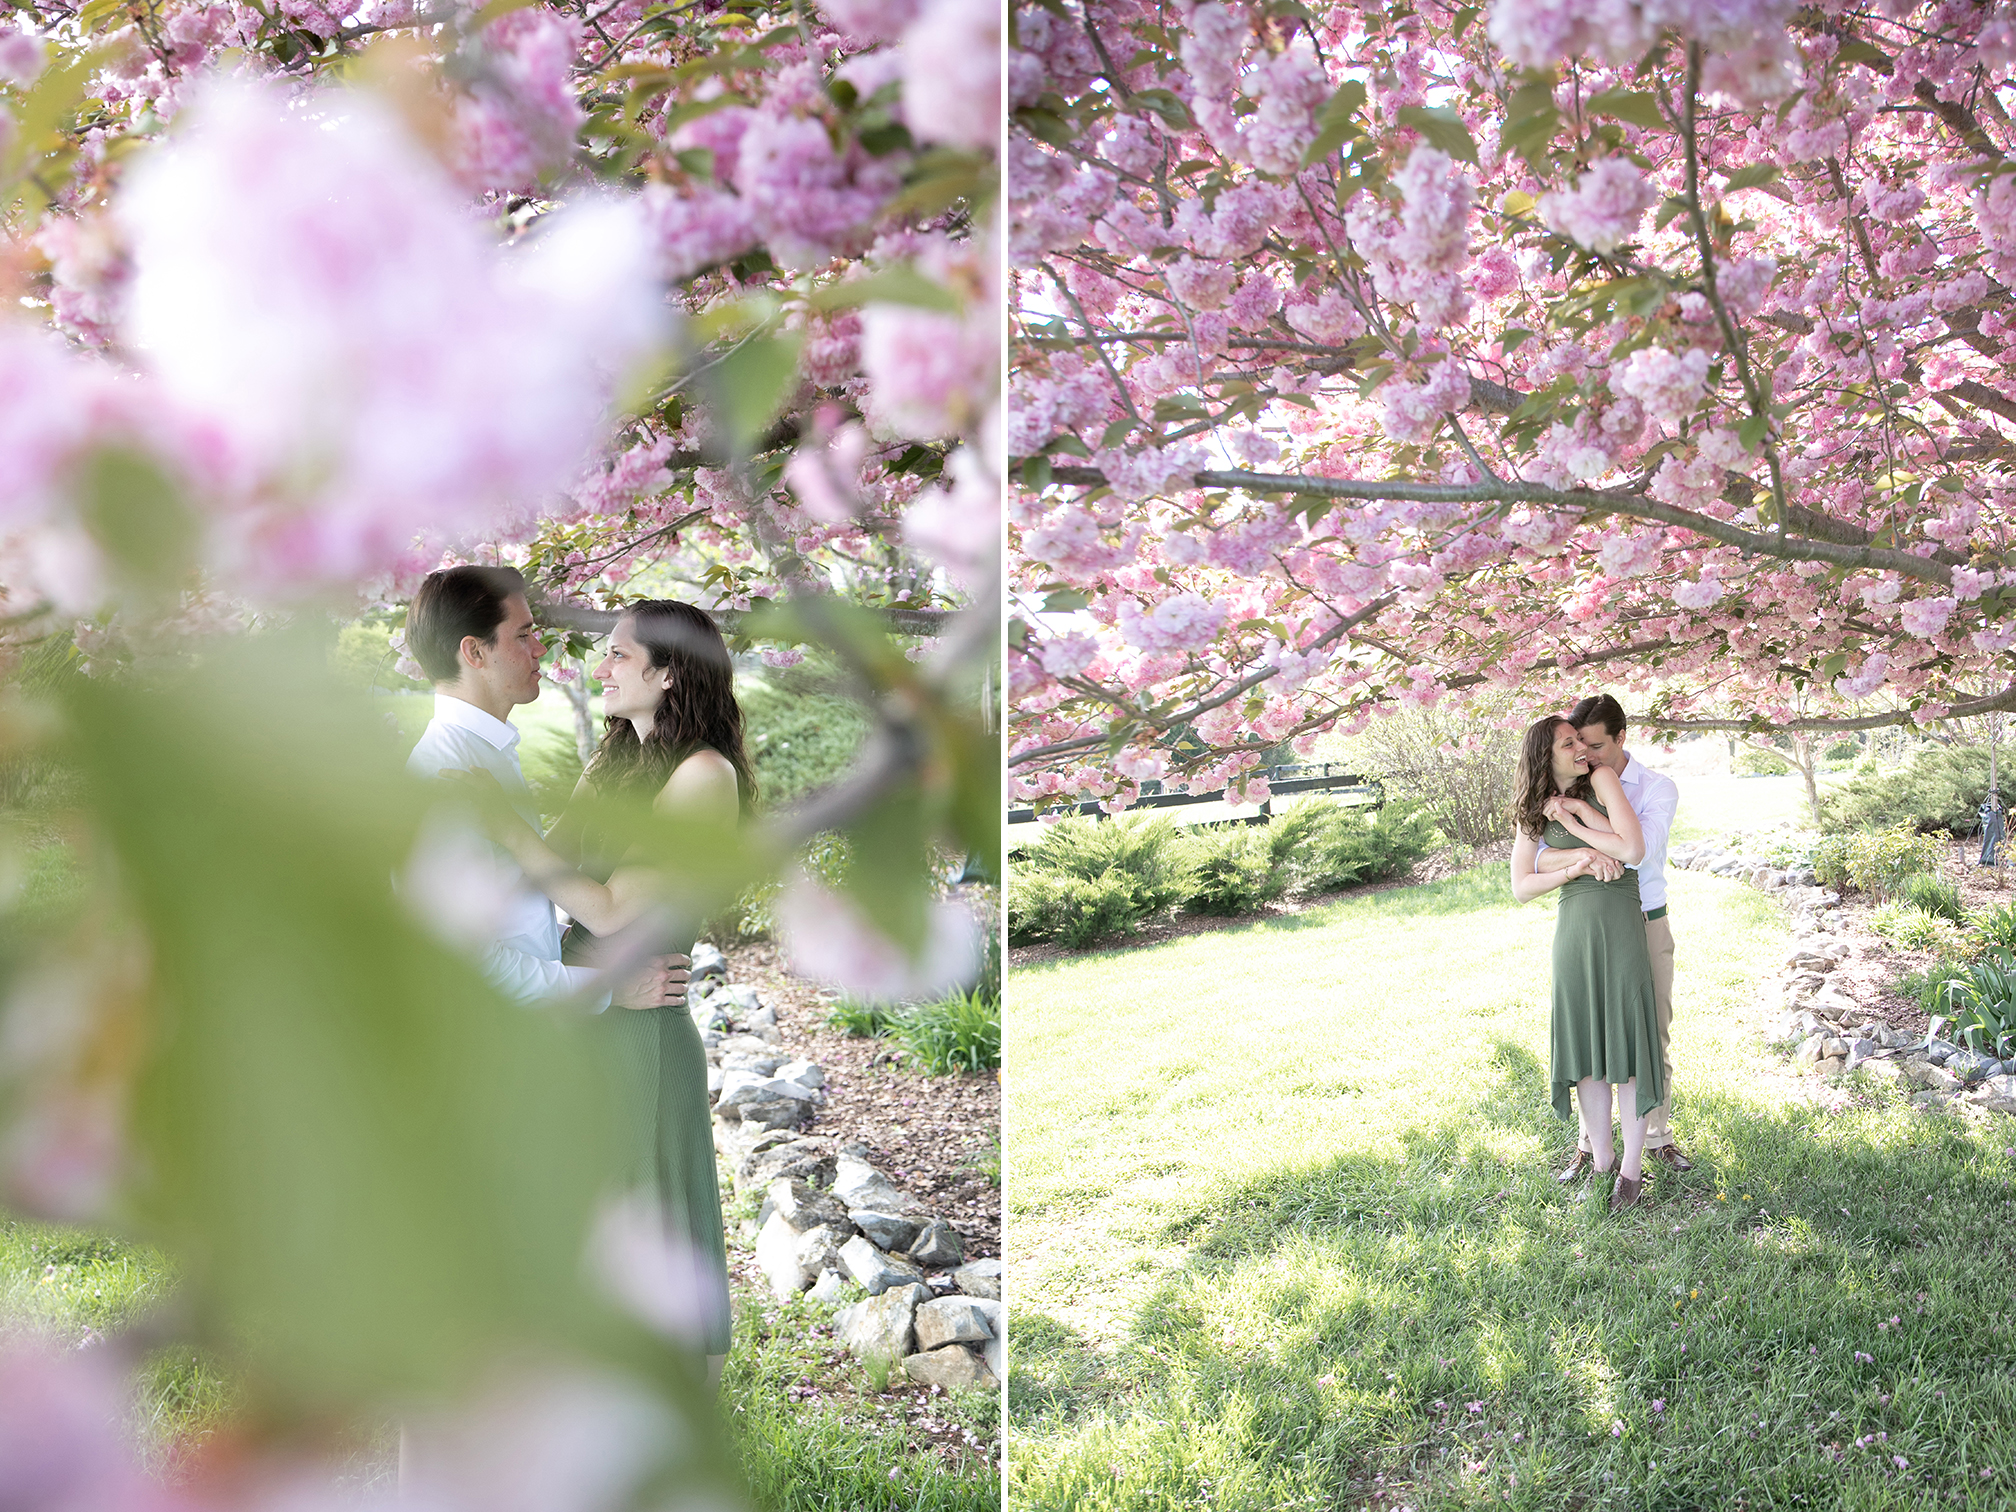 couple embracing under flowering trees